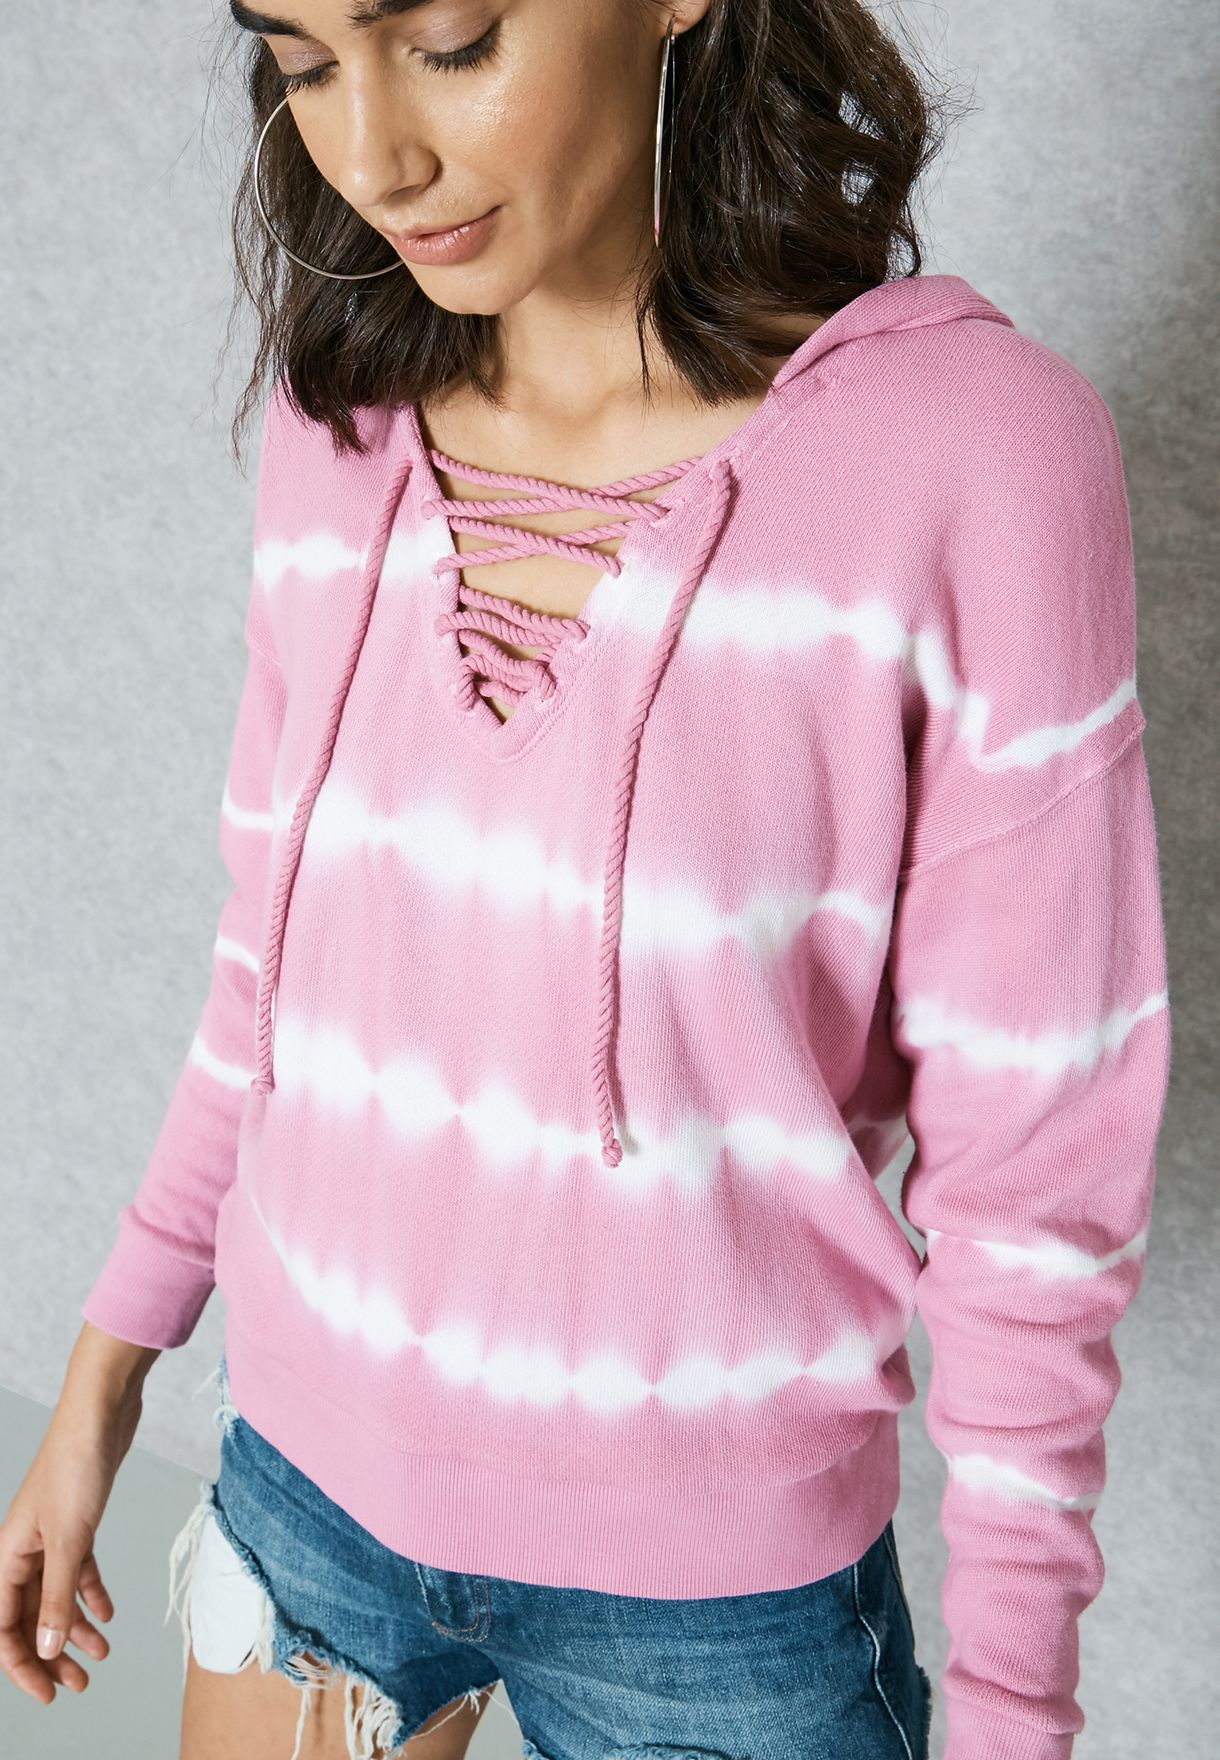 cb7265850c Shop Forever 21 pink Tie Dye Lace Up Hoodie 00226036 for Women ...